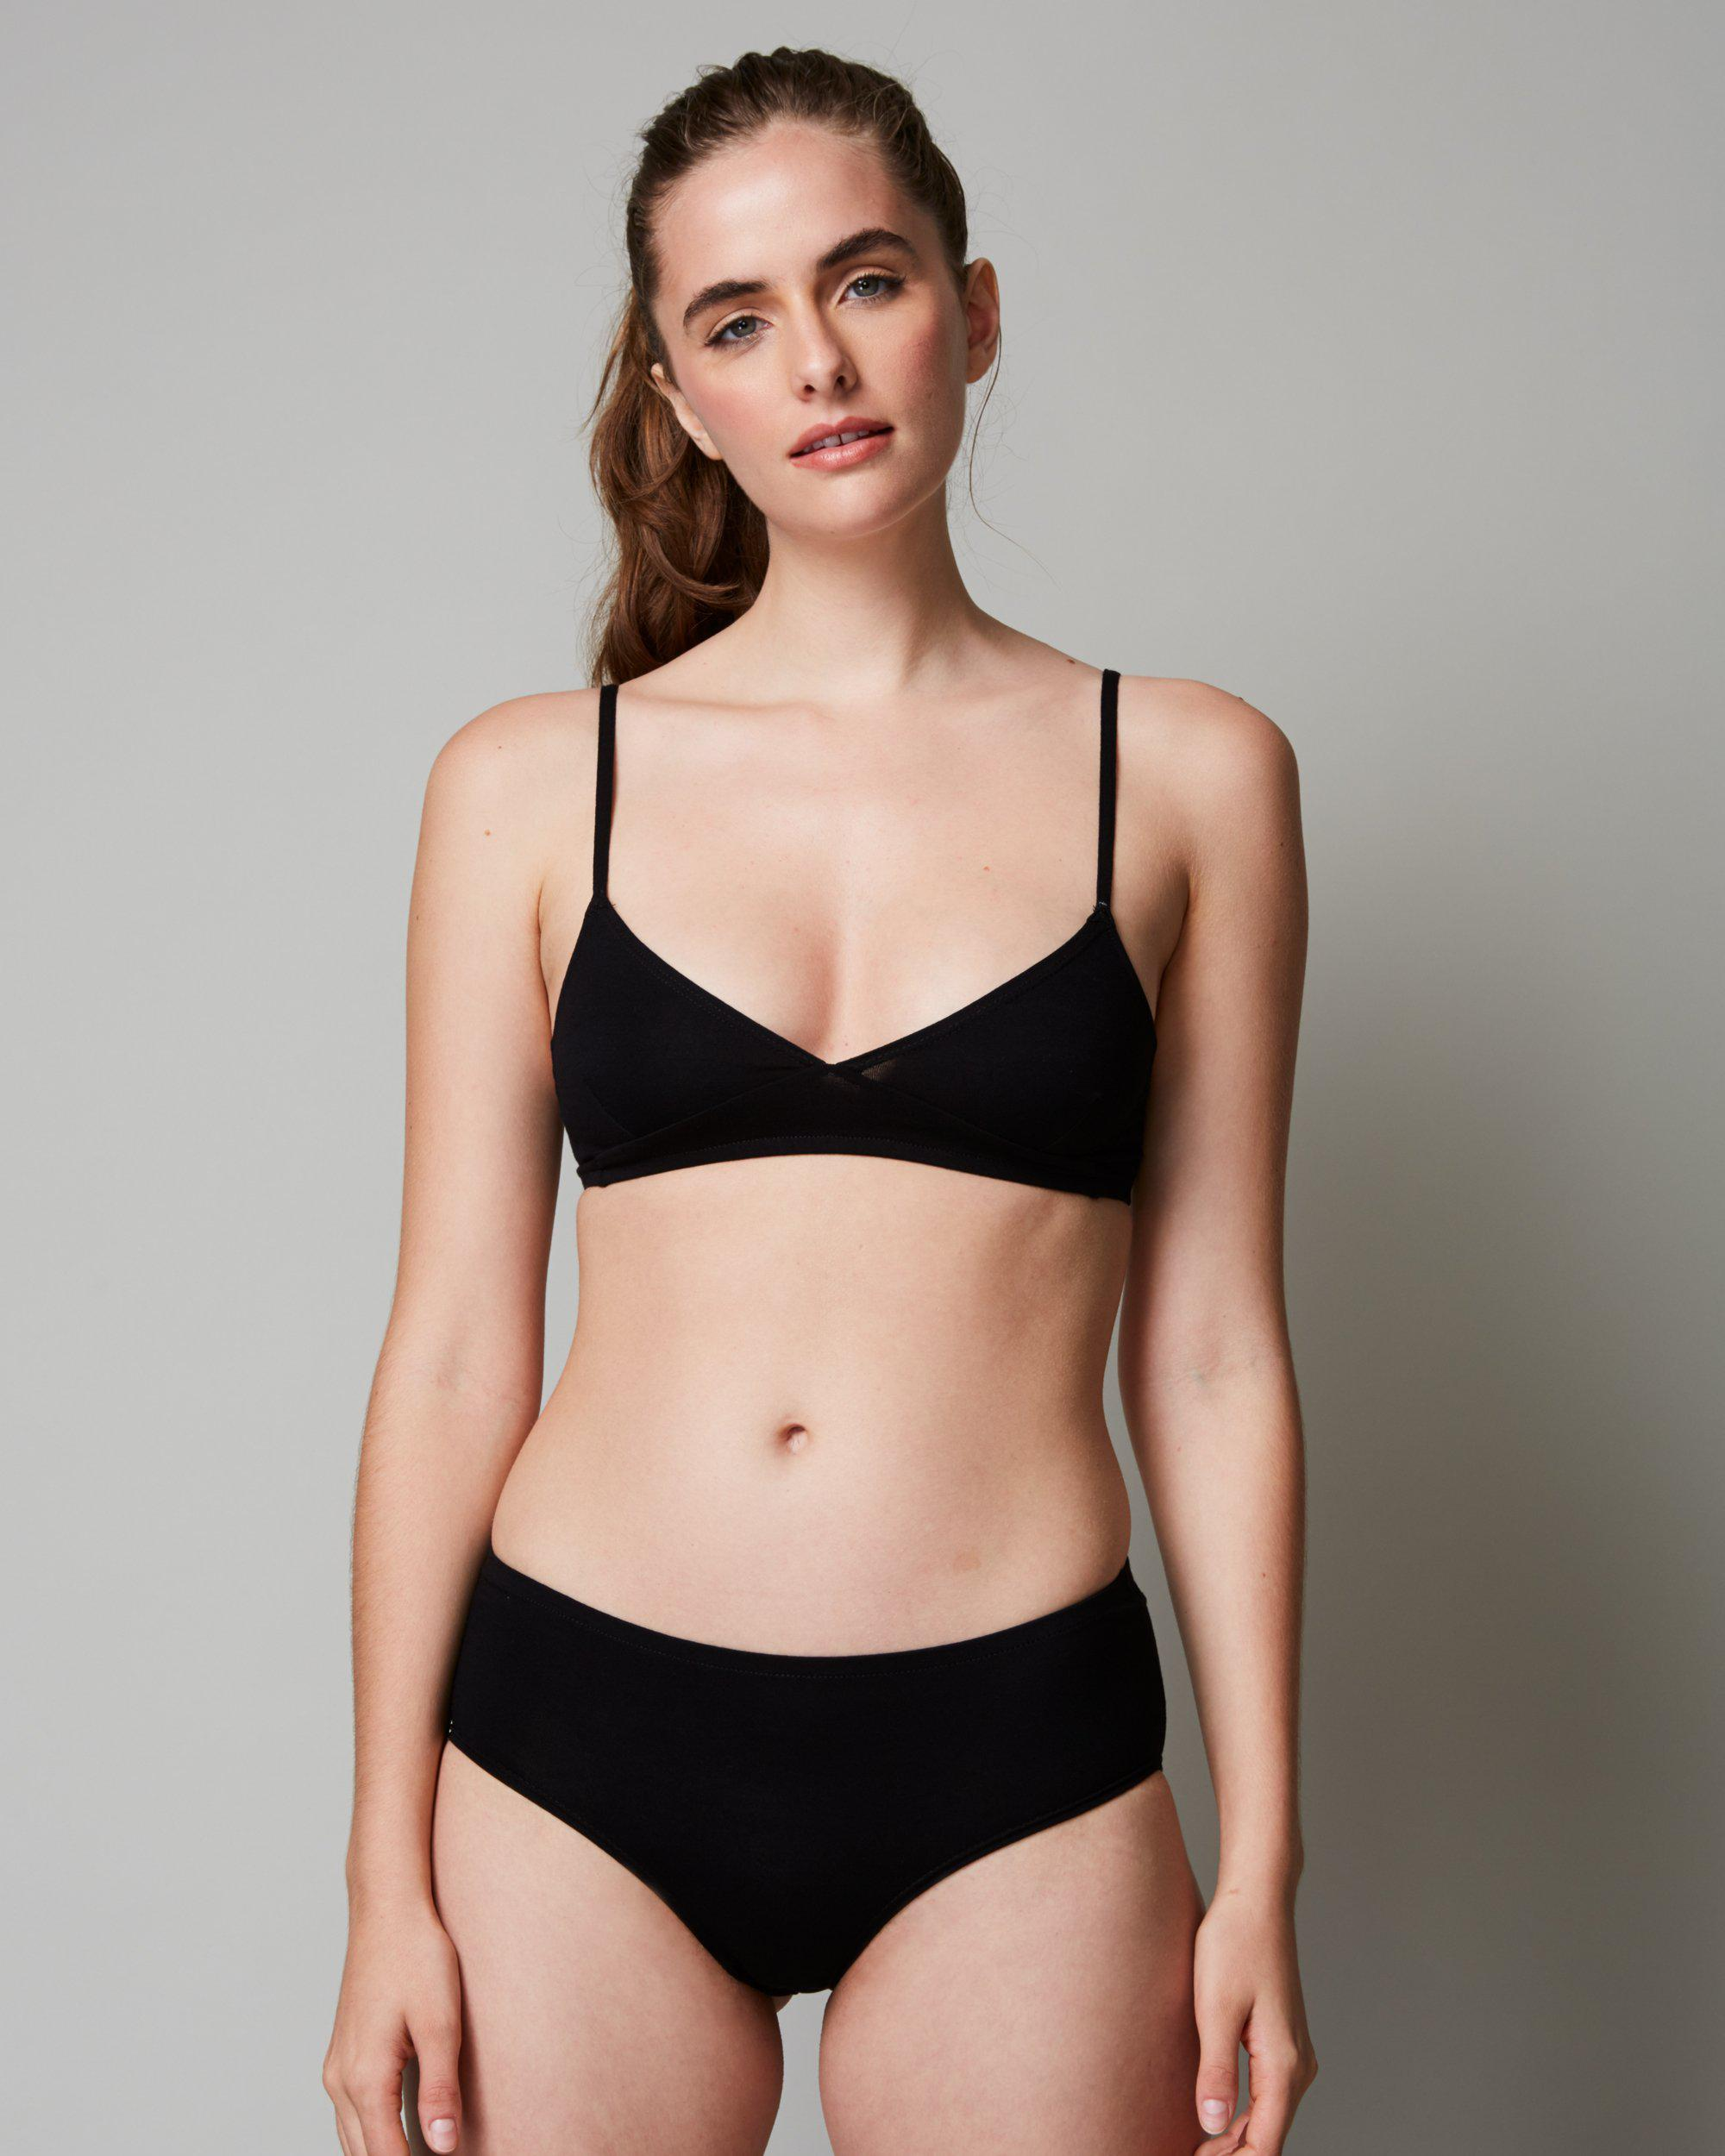 f3b7fca1897 Lyst - Only Hearts So Fine Layering   Lounge Bralette in Black